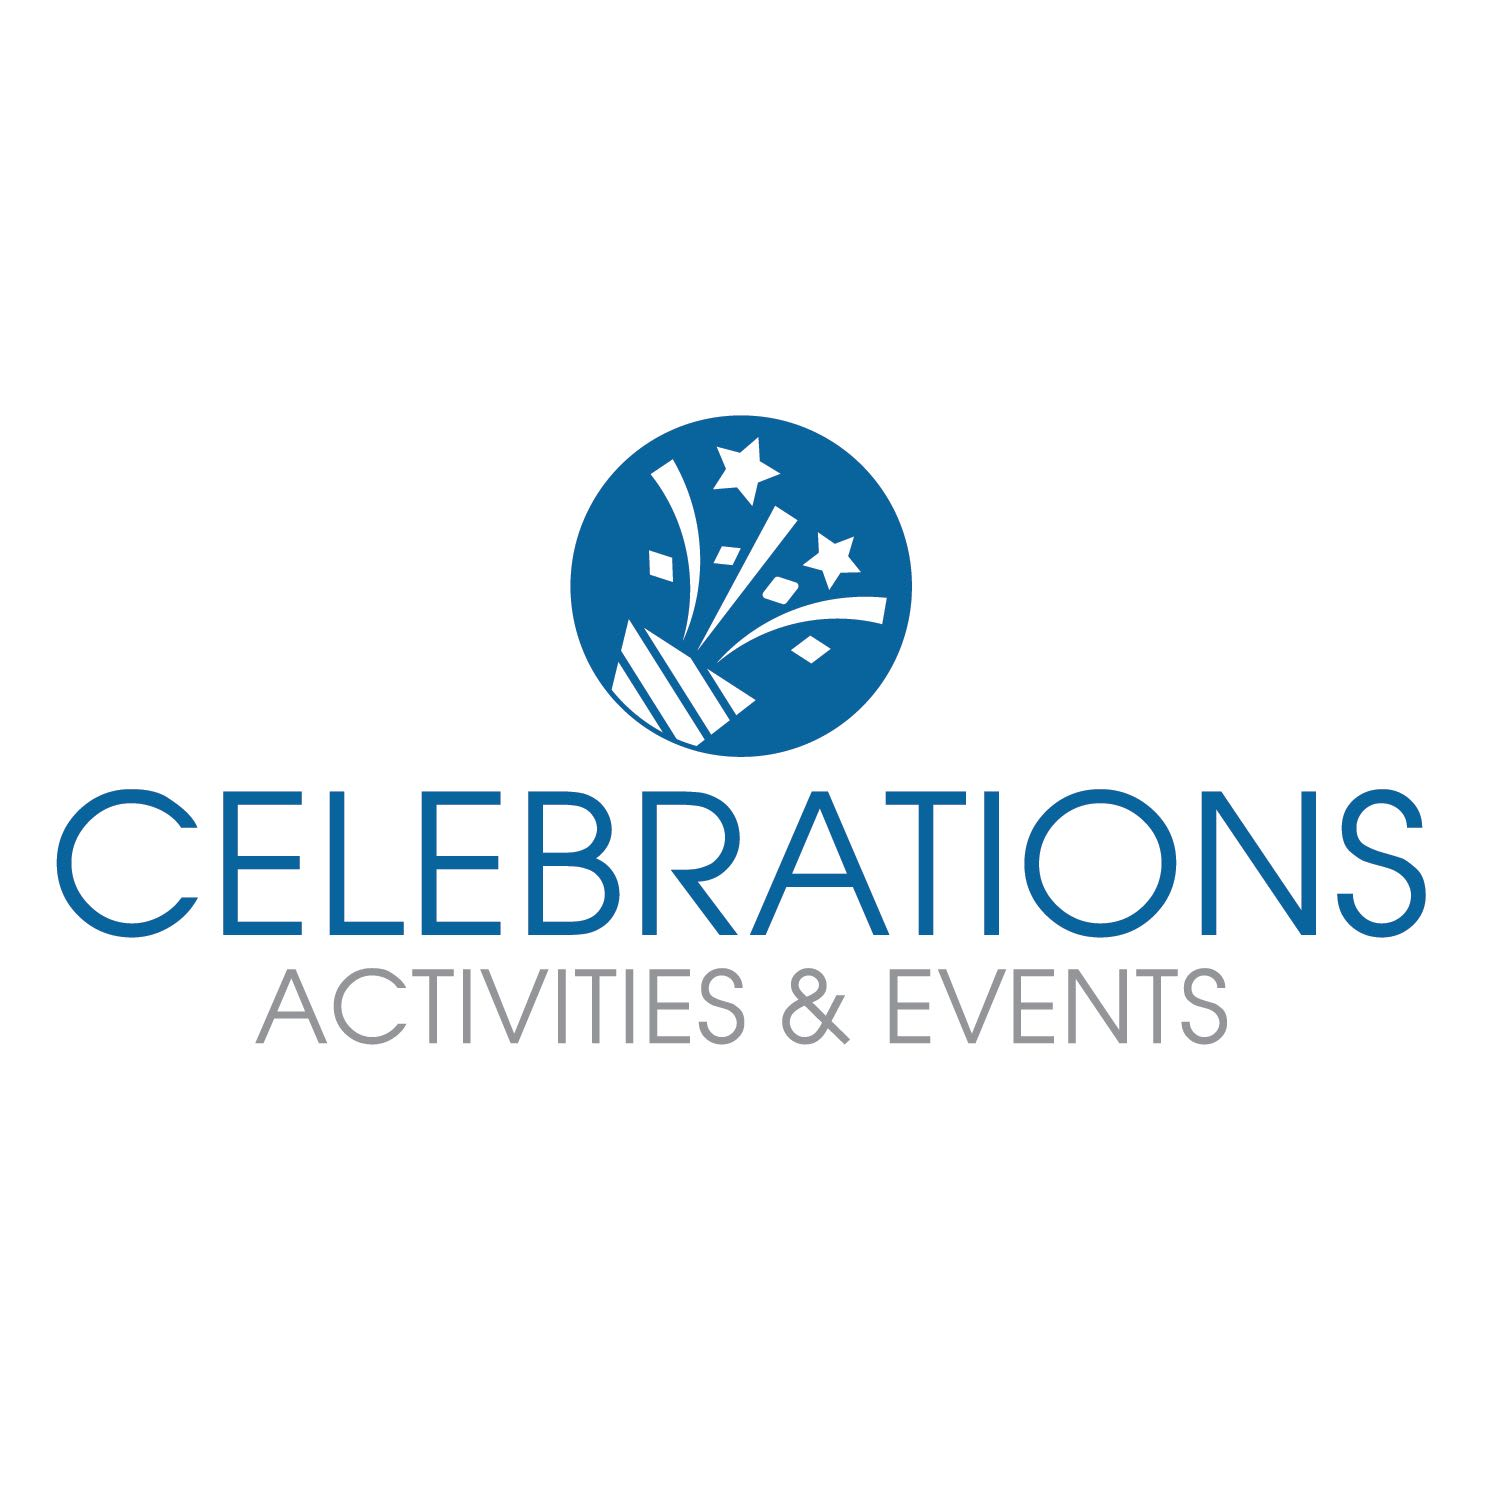 Activity and event celebrations at Discovery Village At Alliance Town Center in Fort Worth, Texas